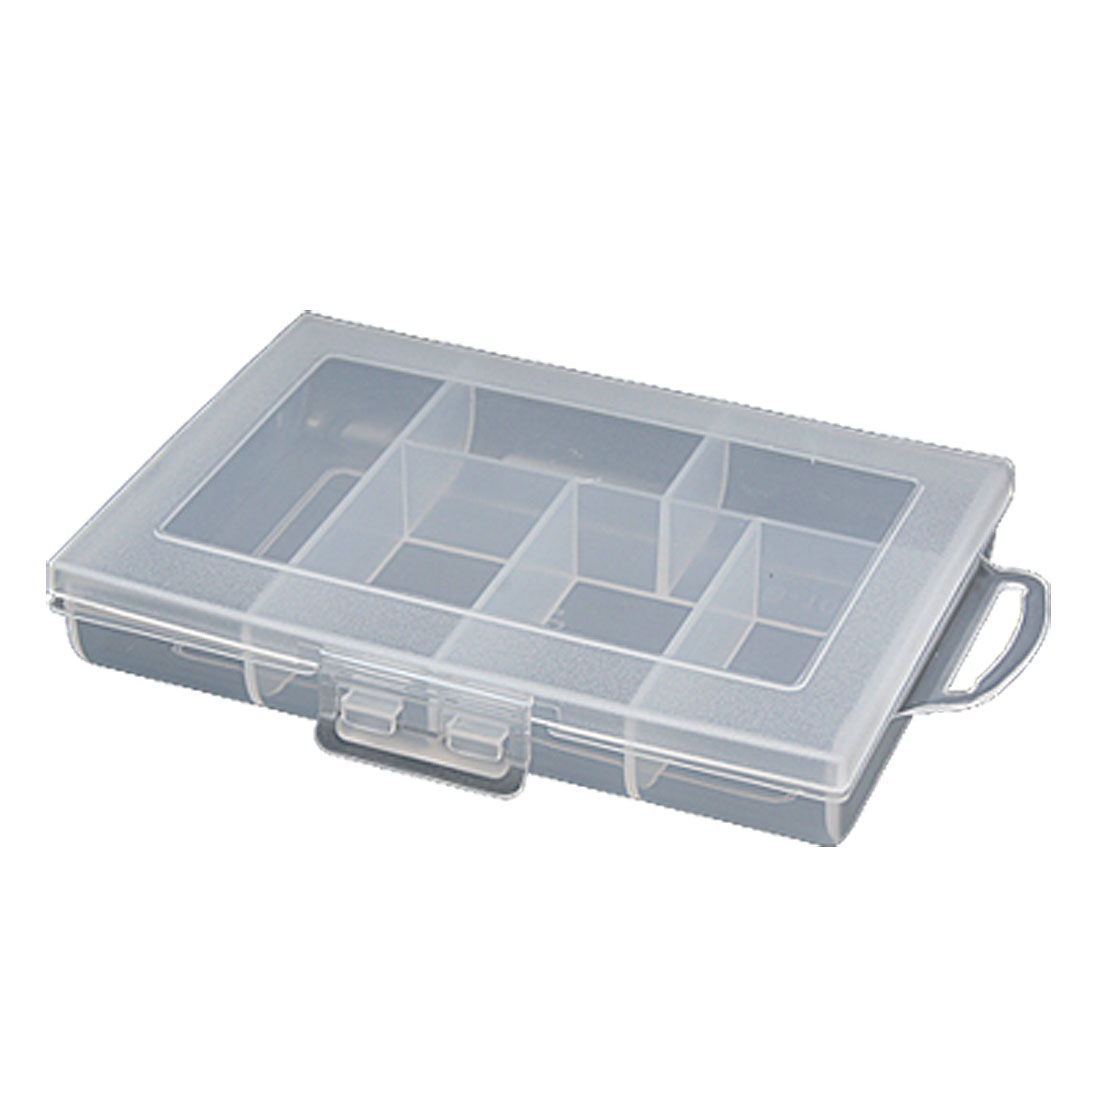 White Translucent Plastic Storage Case Assort Case Components Box